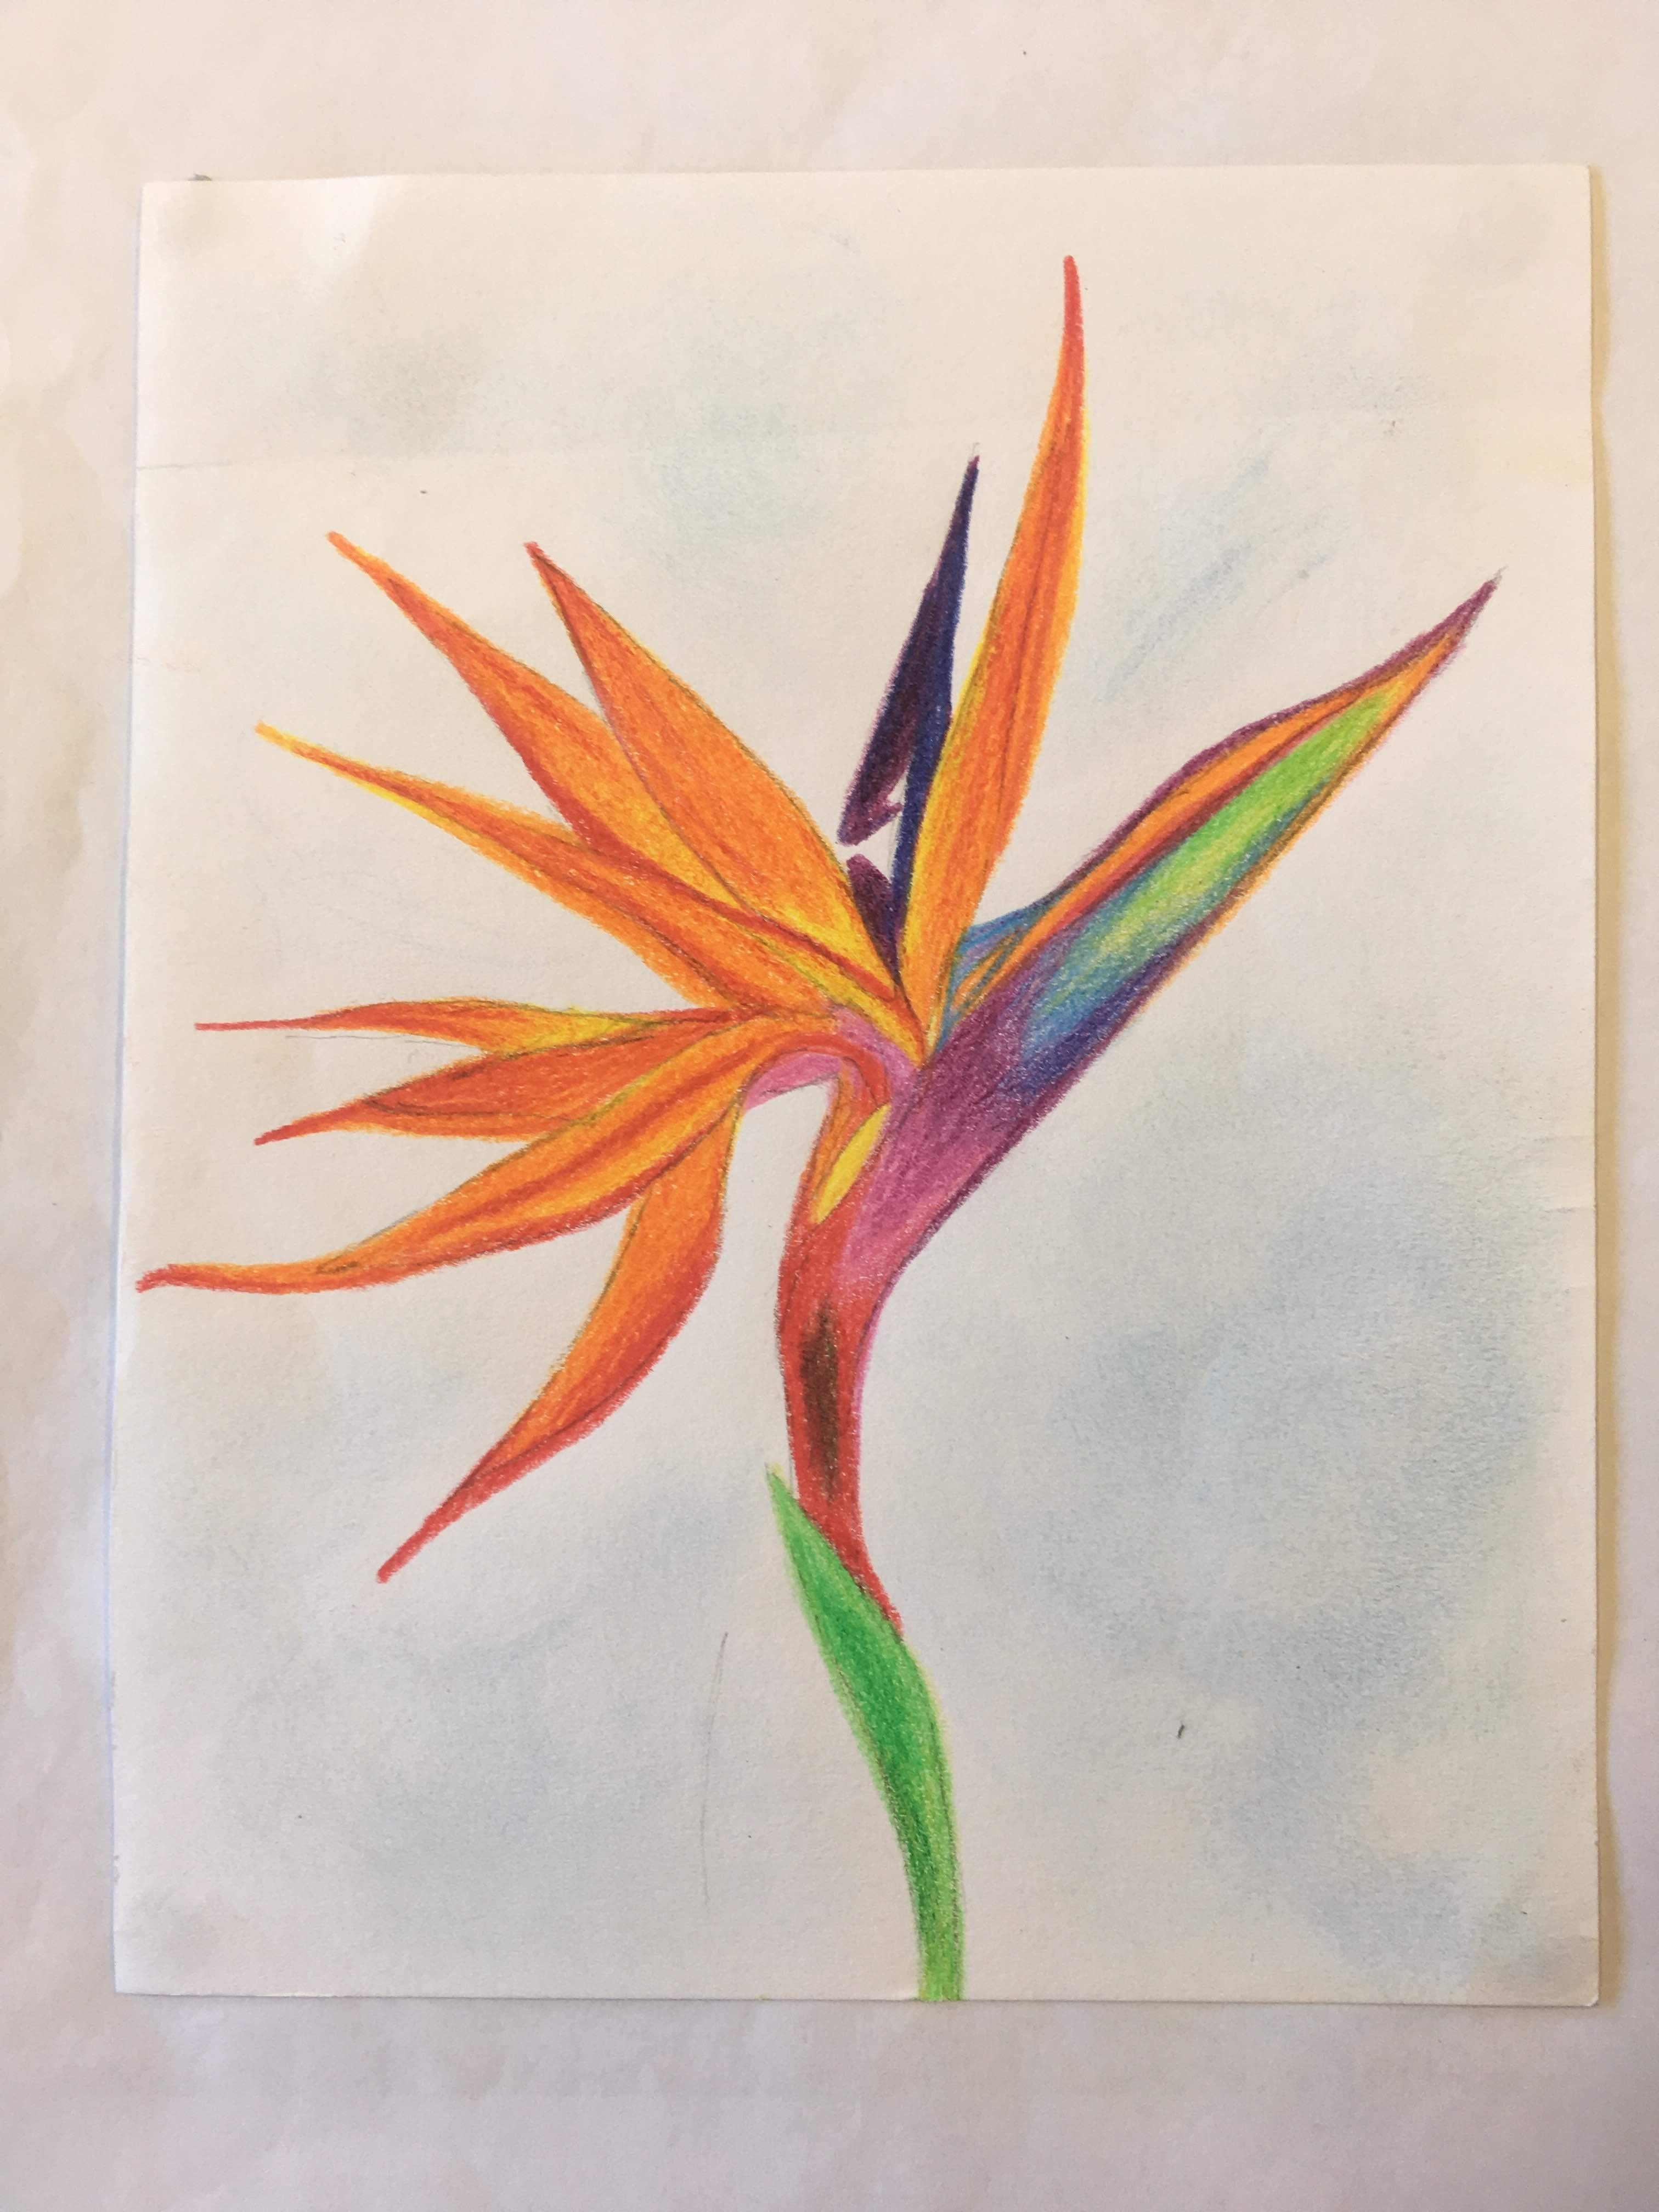 It's just a picture of Dramatic Bird Of Paradise Drawing